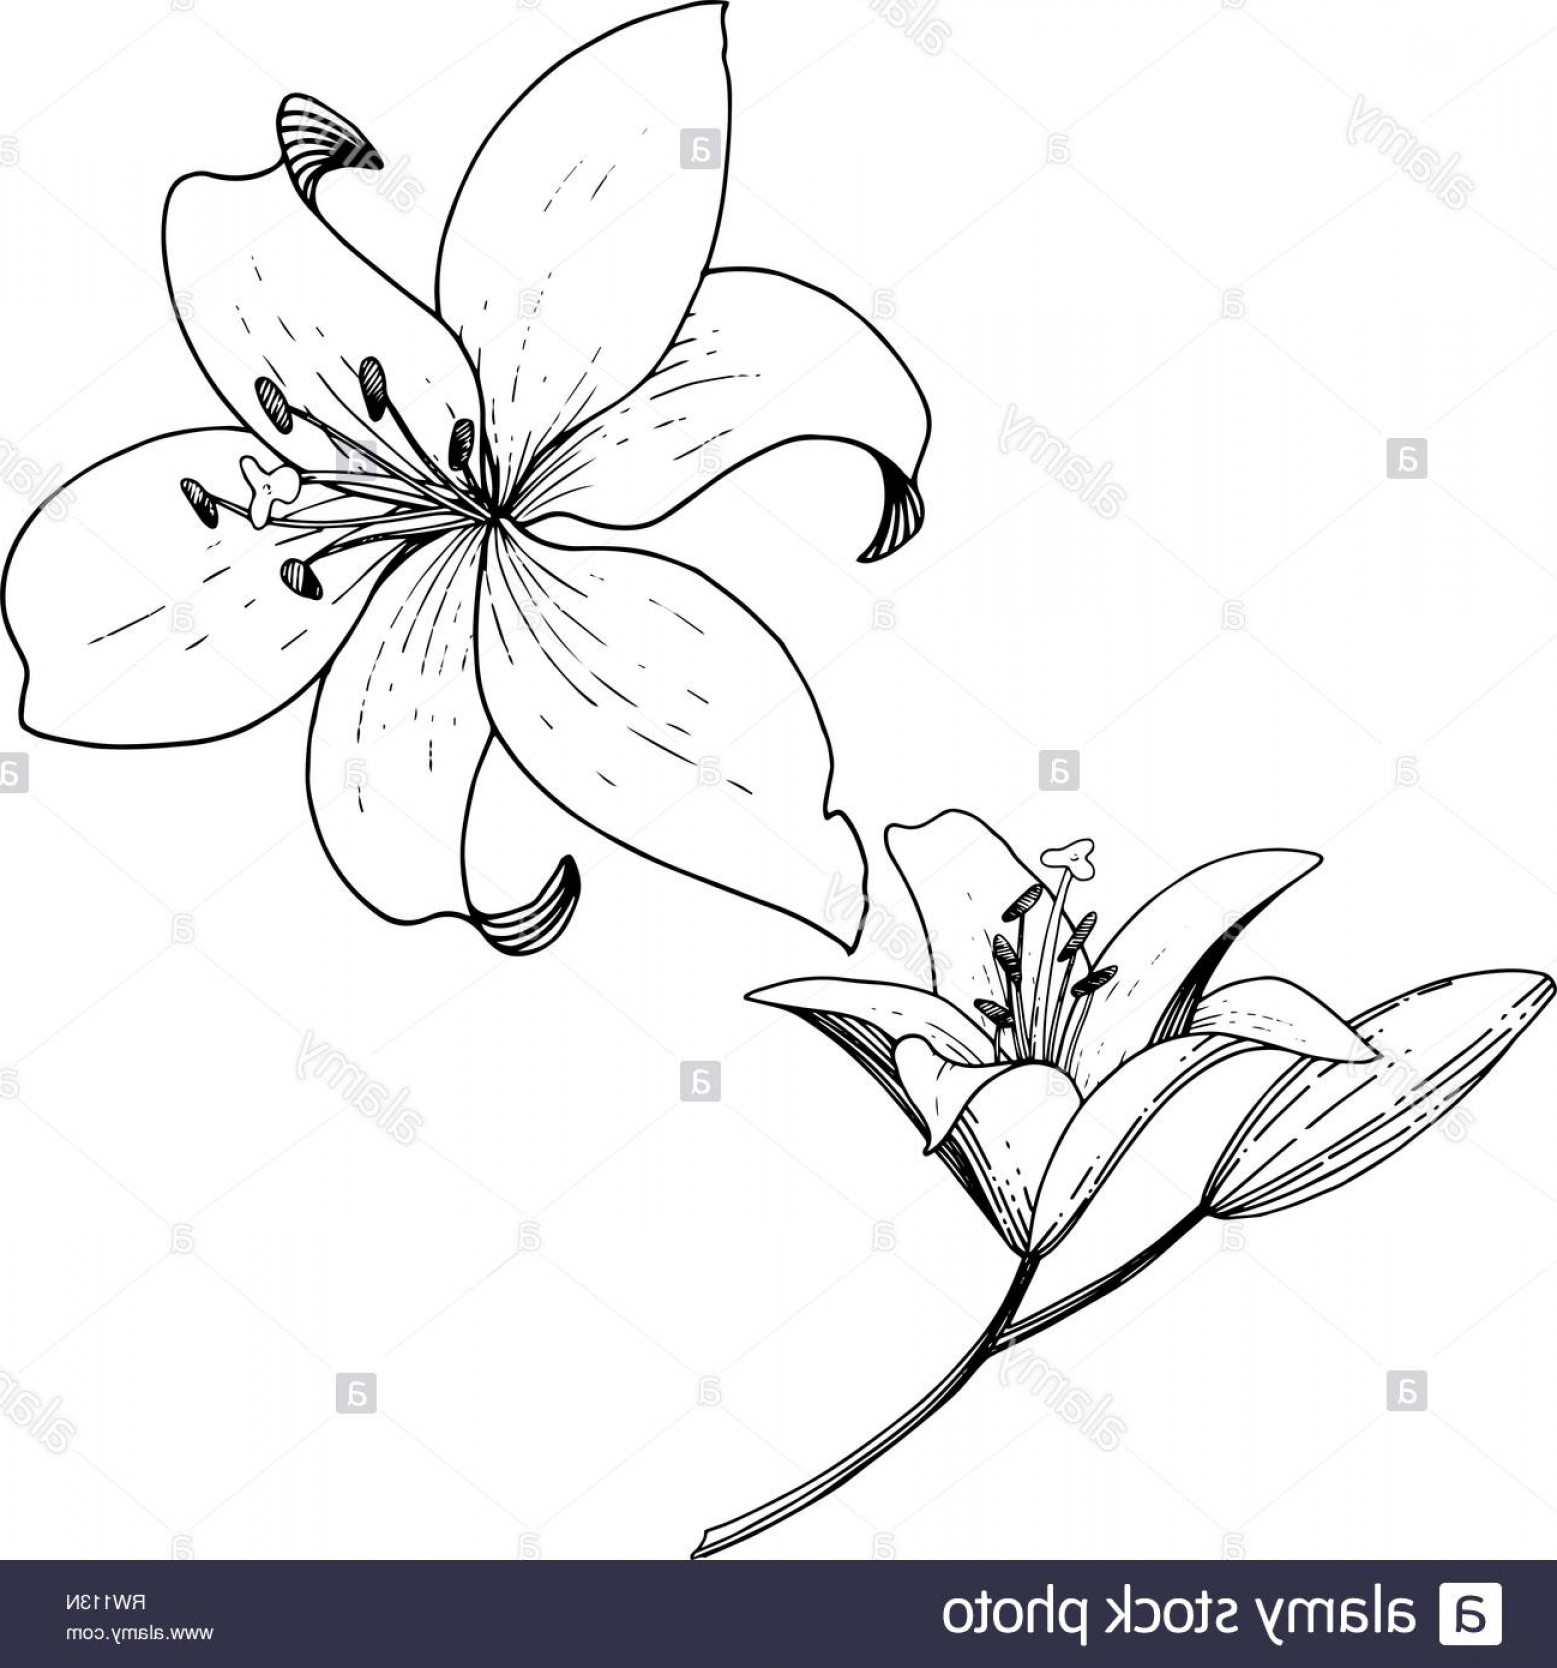 Lily Vector Art: Vector Lily Floral Botanical Flower Black And White Engraved Ink Art Isolated Lilies Illustration Element Image